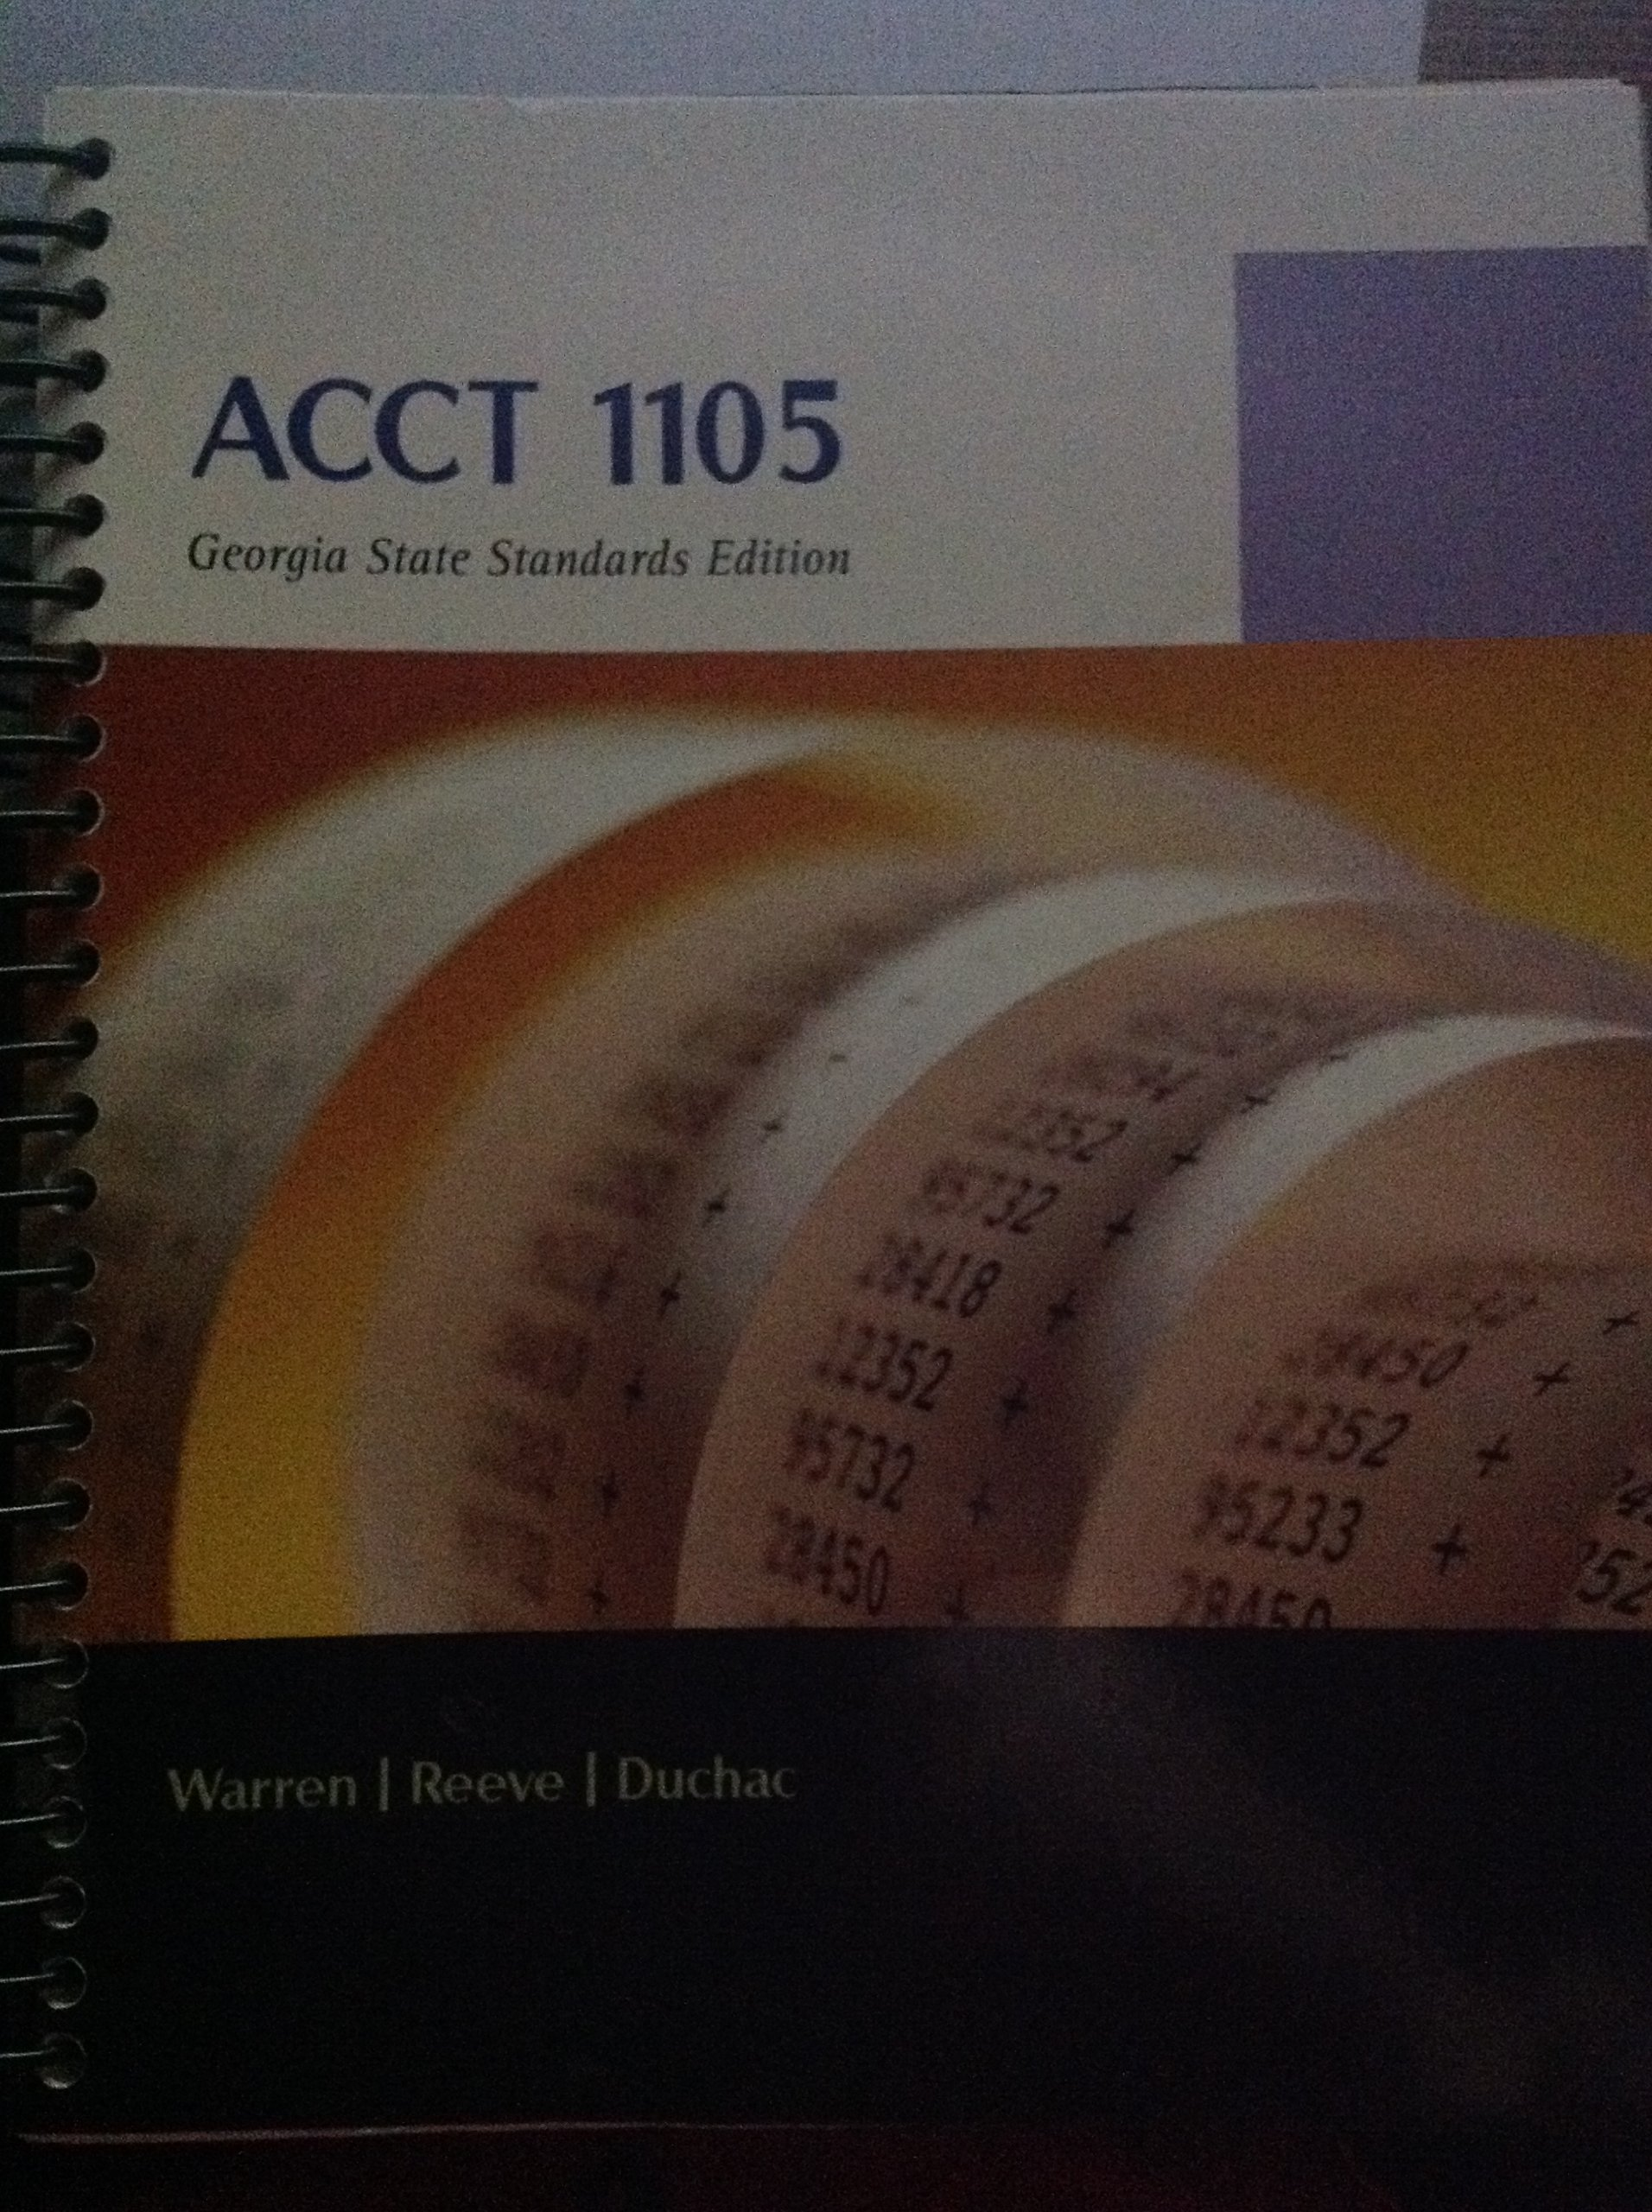 Download Accounting-ACCT 1105 Vol. 2 Chapters 10-17 pdf